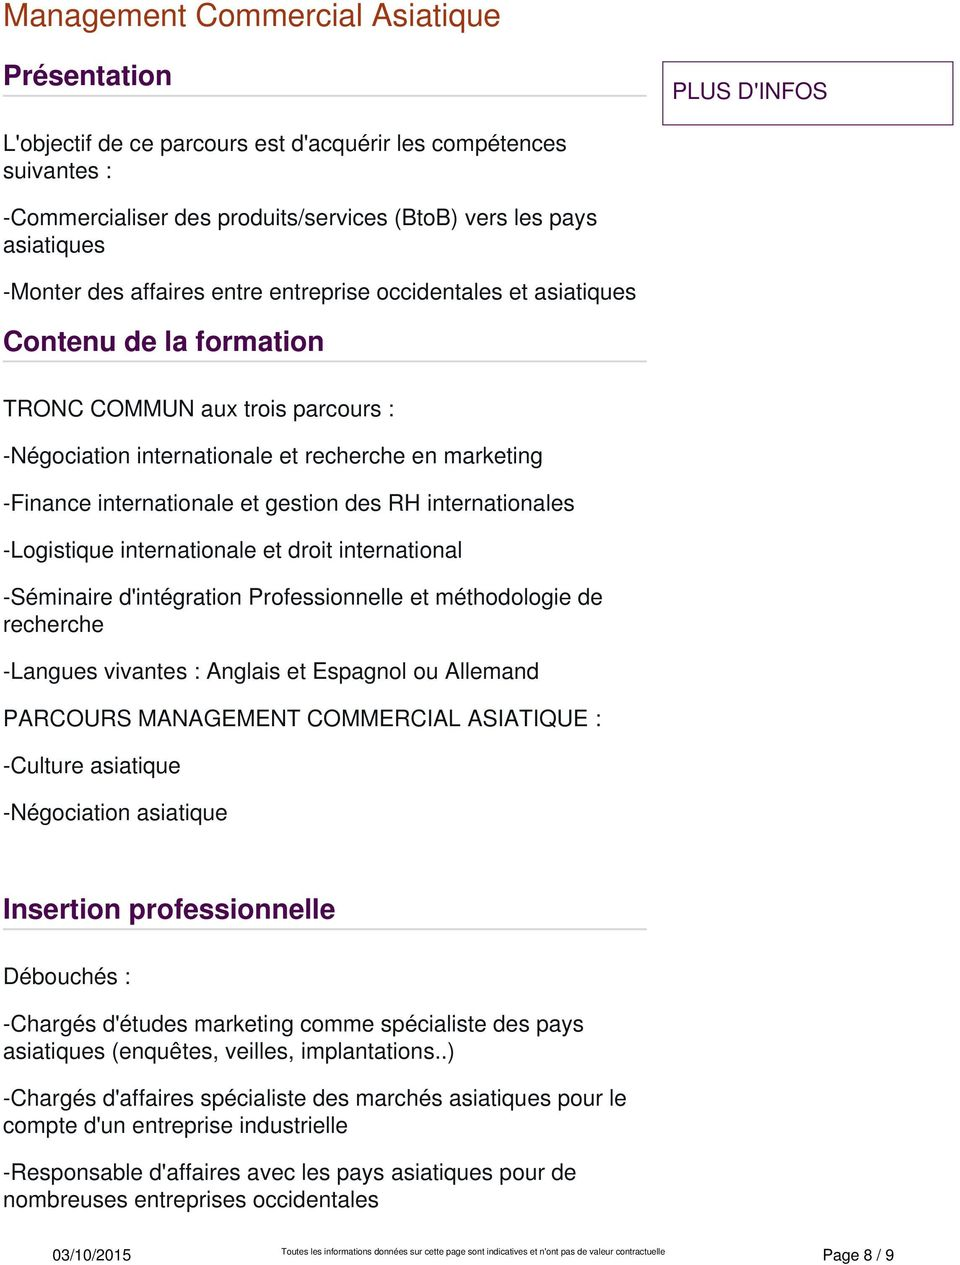 internationale et gestion des RH internationales -Logistique internationale et droit international -Séminaire d'intégration Professionnelle et méthodologie de recherche -Langues vivantes : Anglais et